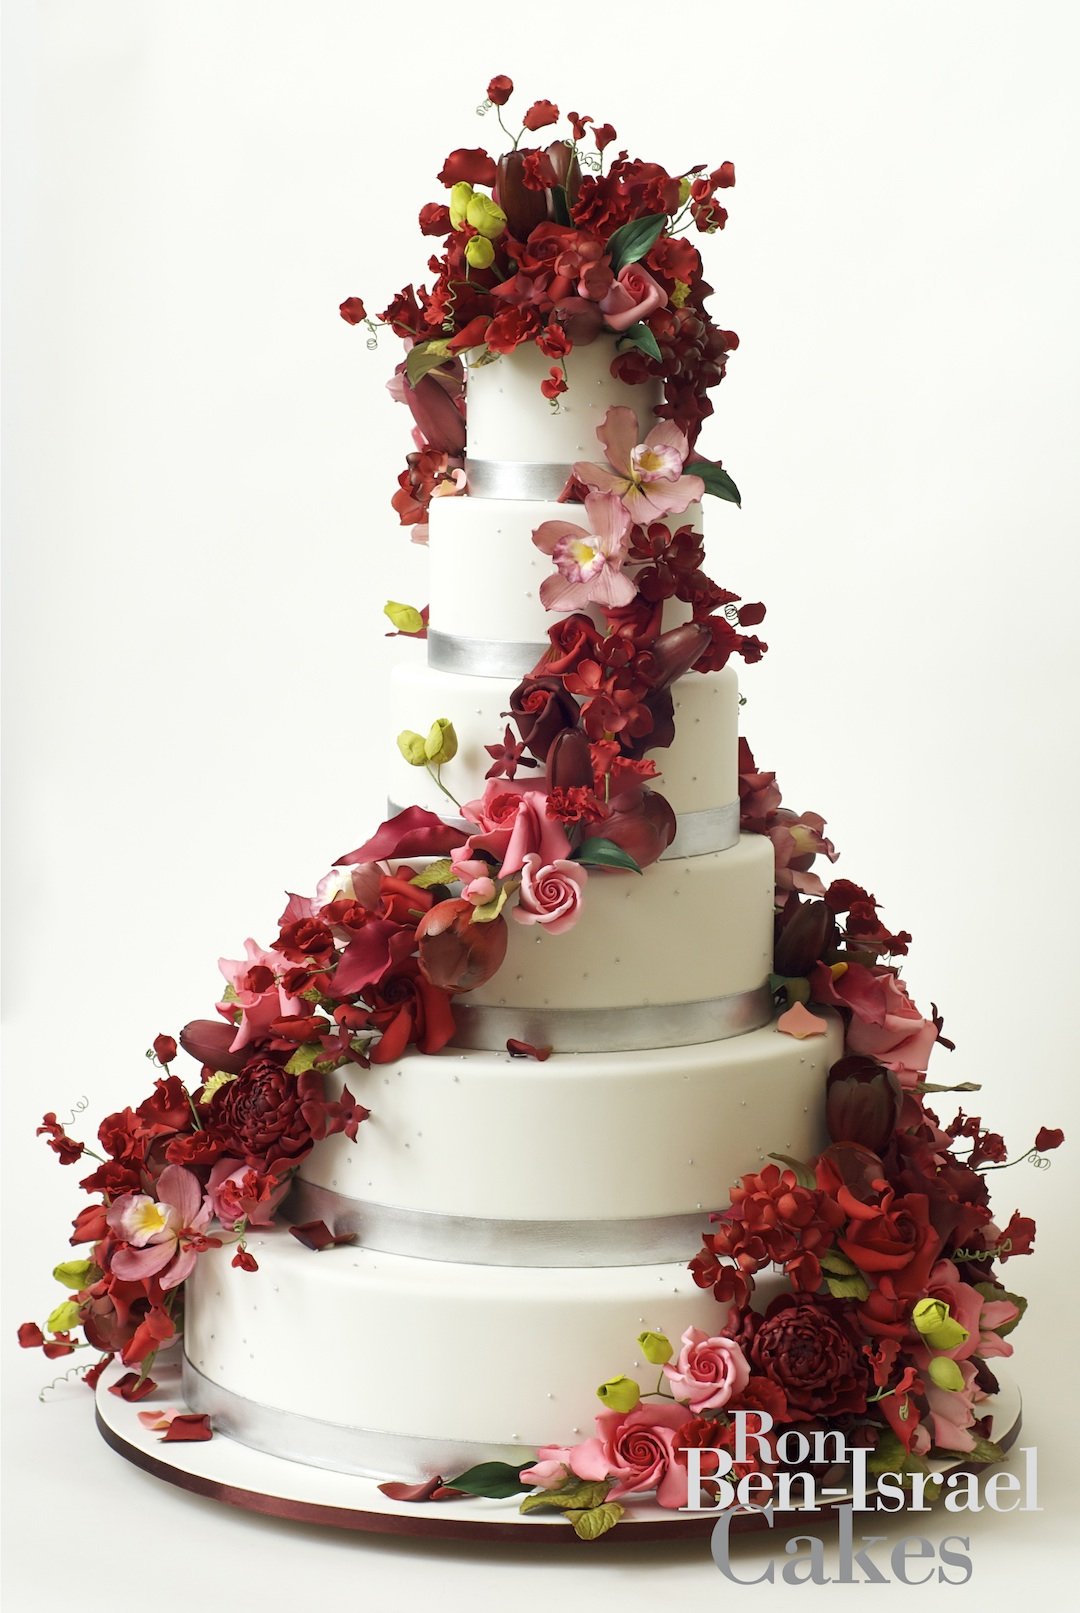 Wedding-cake-inspiration-ron-ben-isreal-wedding-cakes-red-pink-cascading-florals.original.original